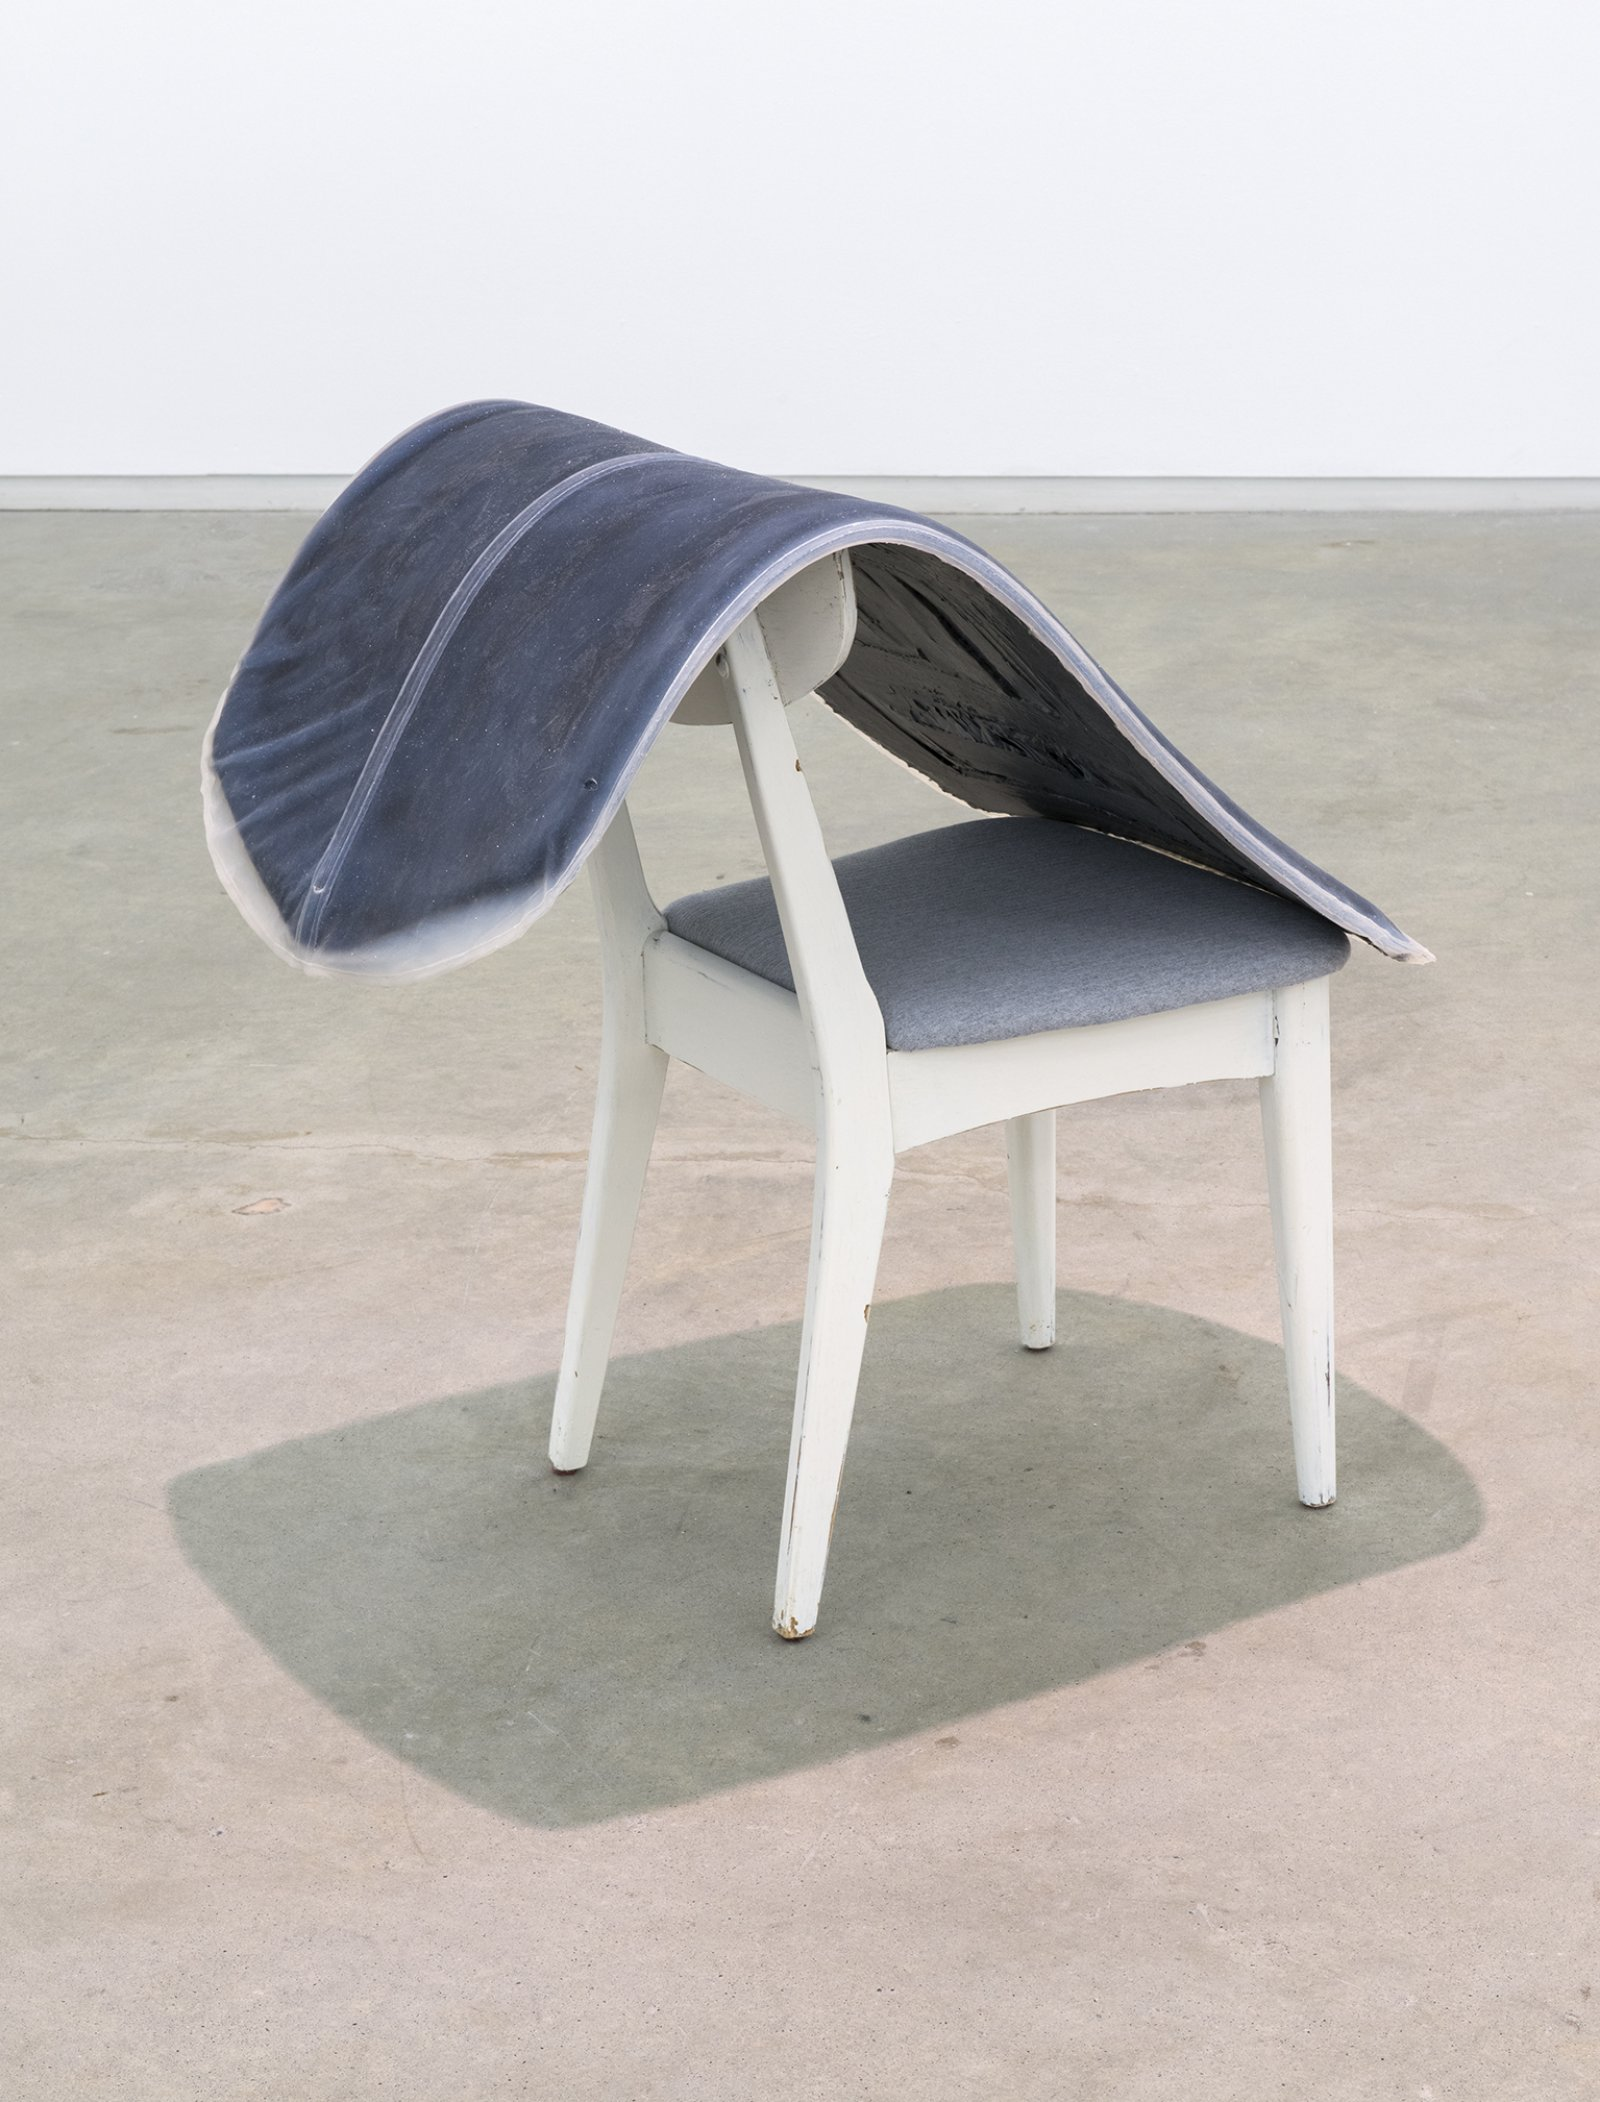 Liz Magor, Formal I, 2012, platinum-cure silicone rubber, chair, 32 x 24 x 32 in. (81 x 61 x 81 cm) by Liz Magor